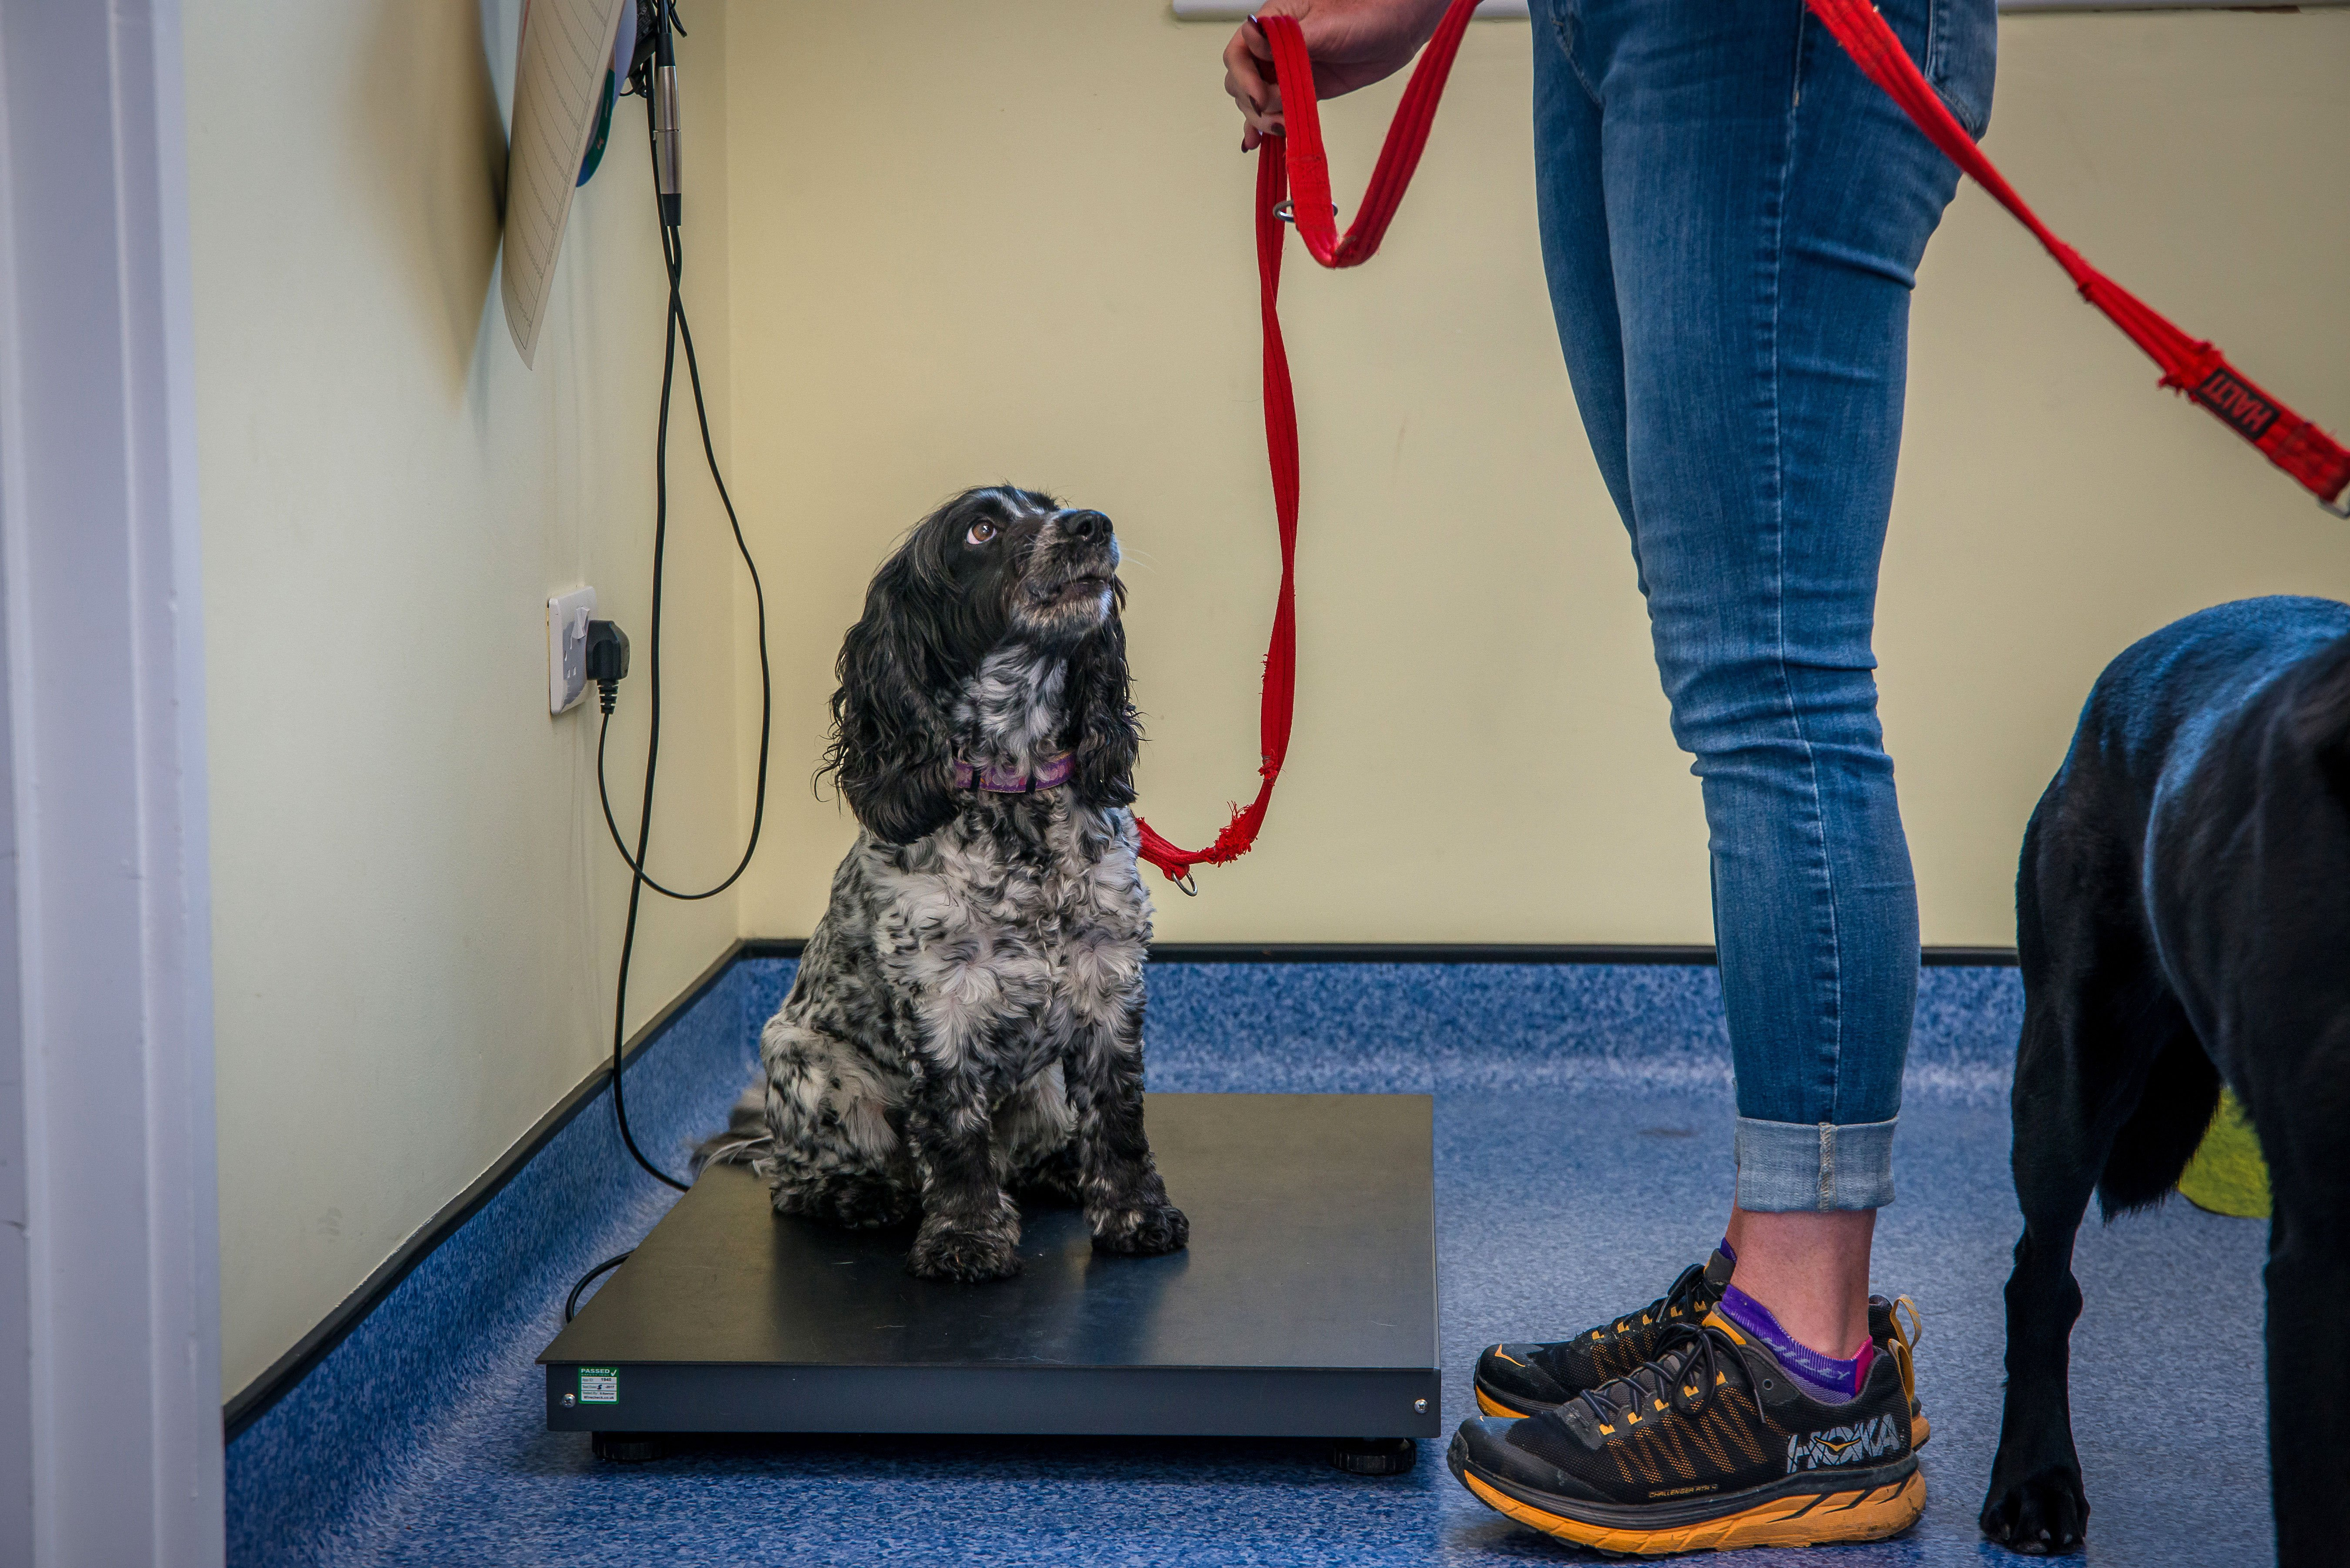 Spaniel puppy standing on scales with owner holding lead